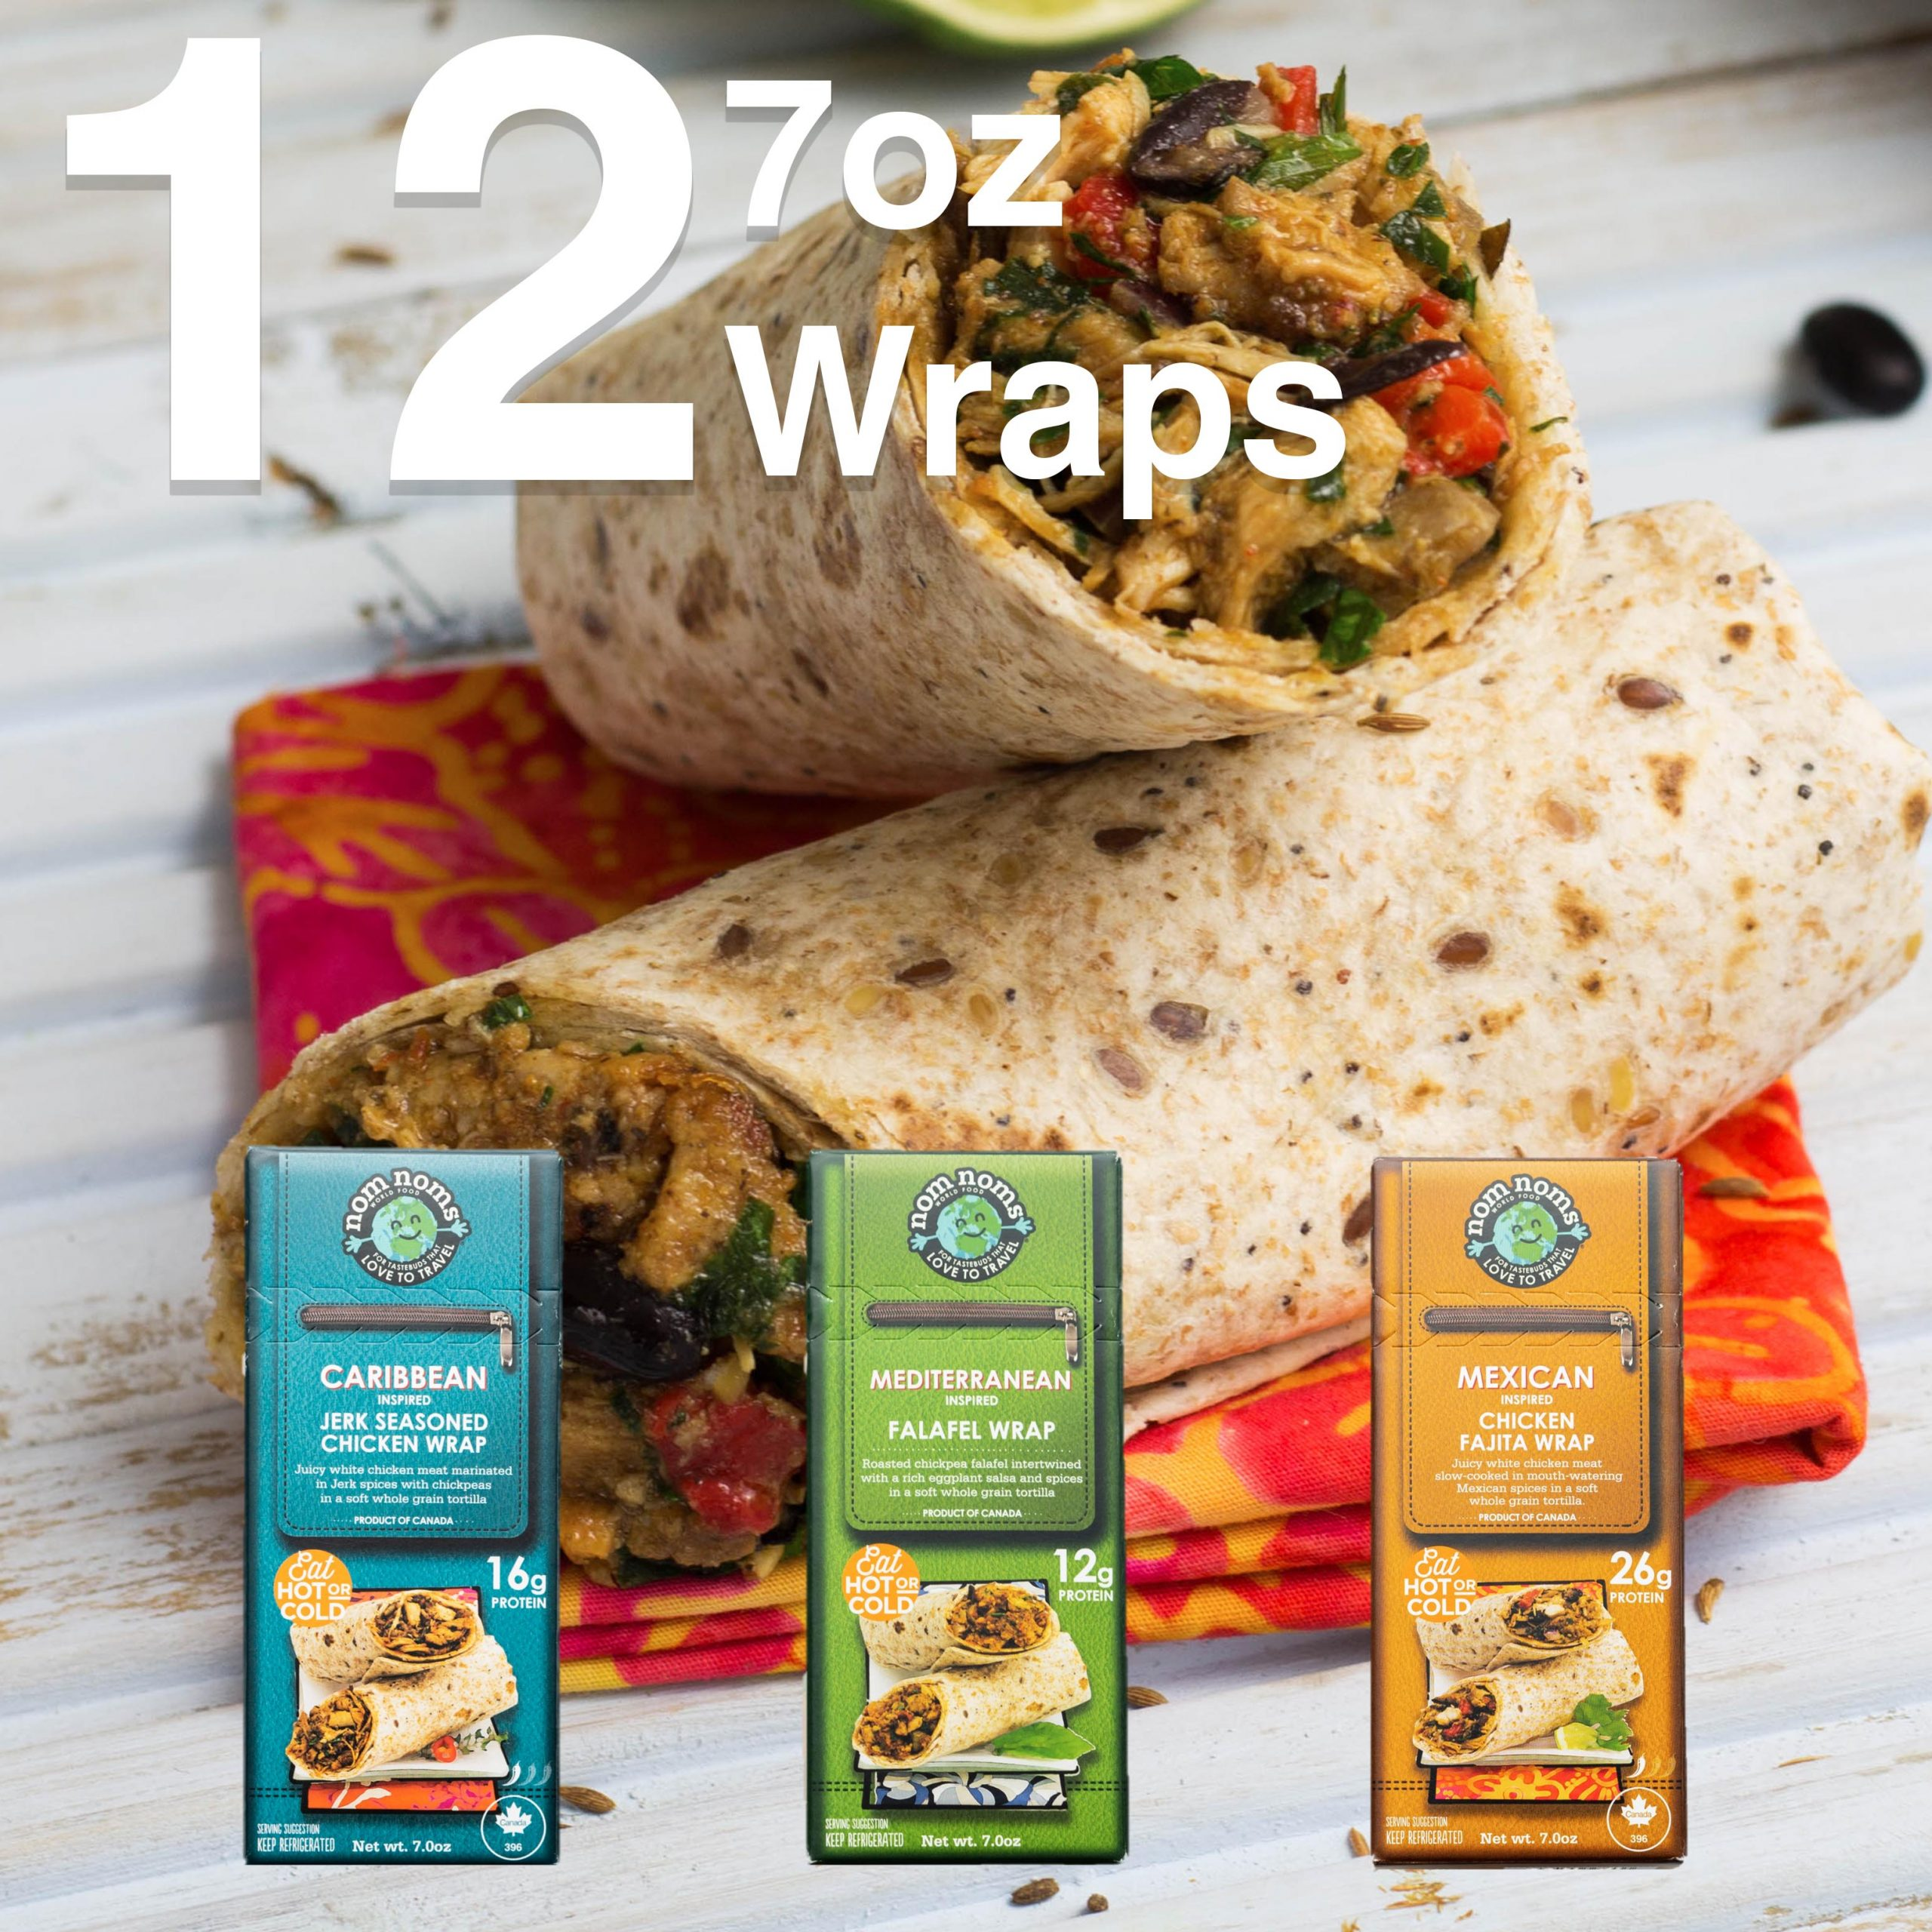 12 7oz Wraps 3 Flavors Feature